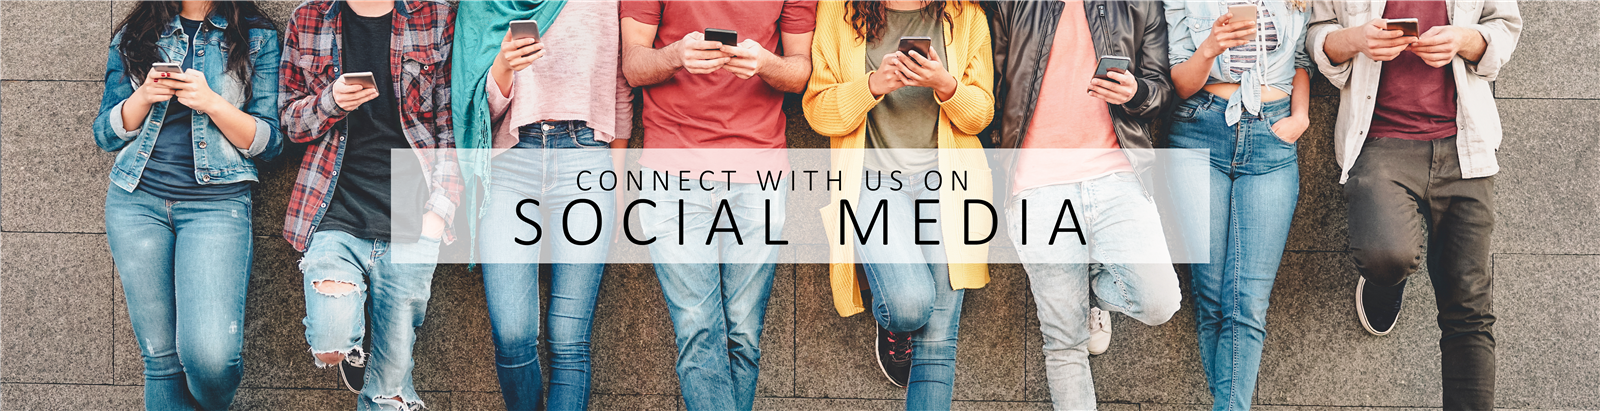 Conncet with us on Social Media